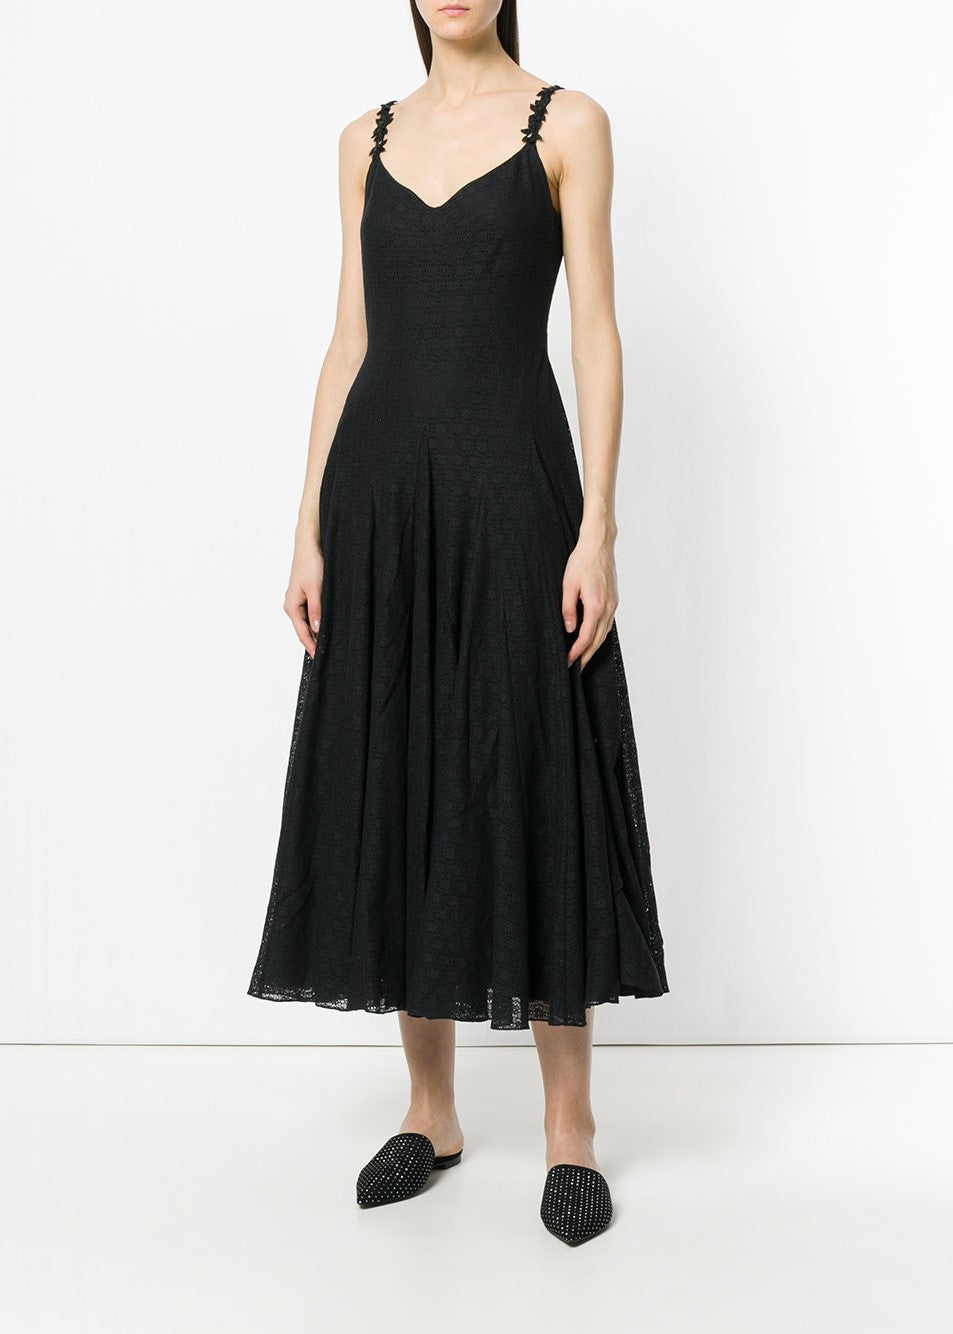 Noon by Noon emma lace strap dress black